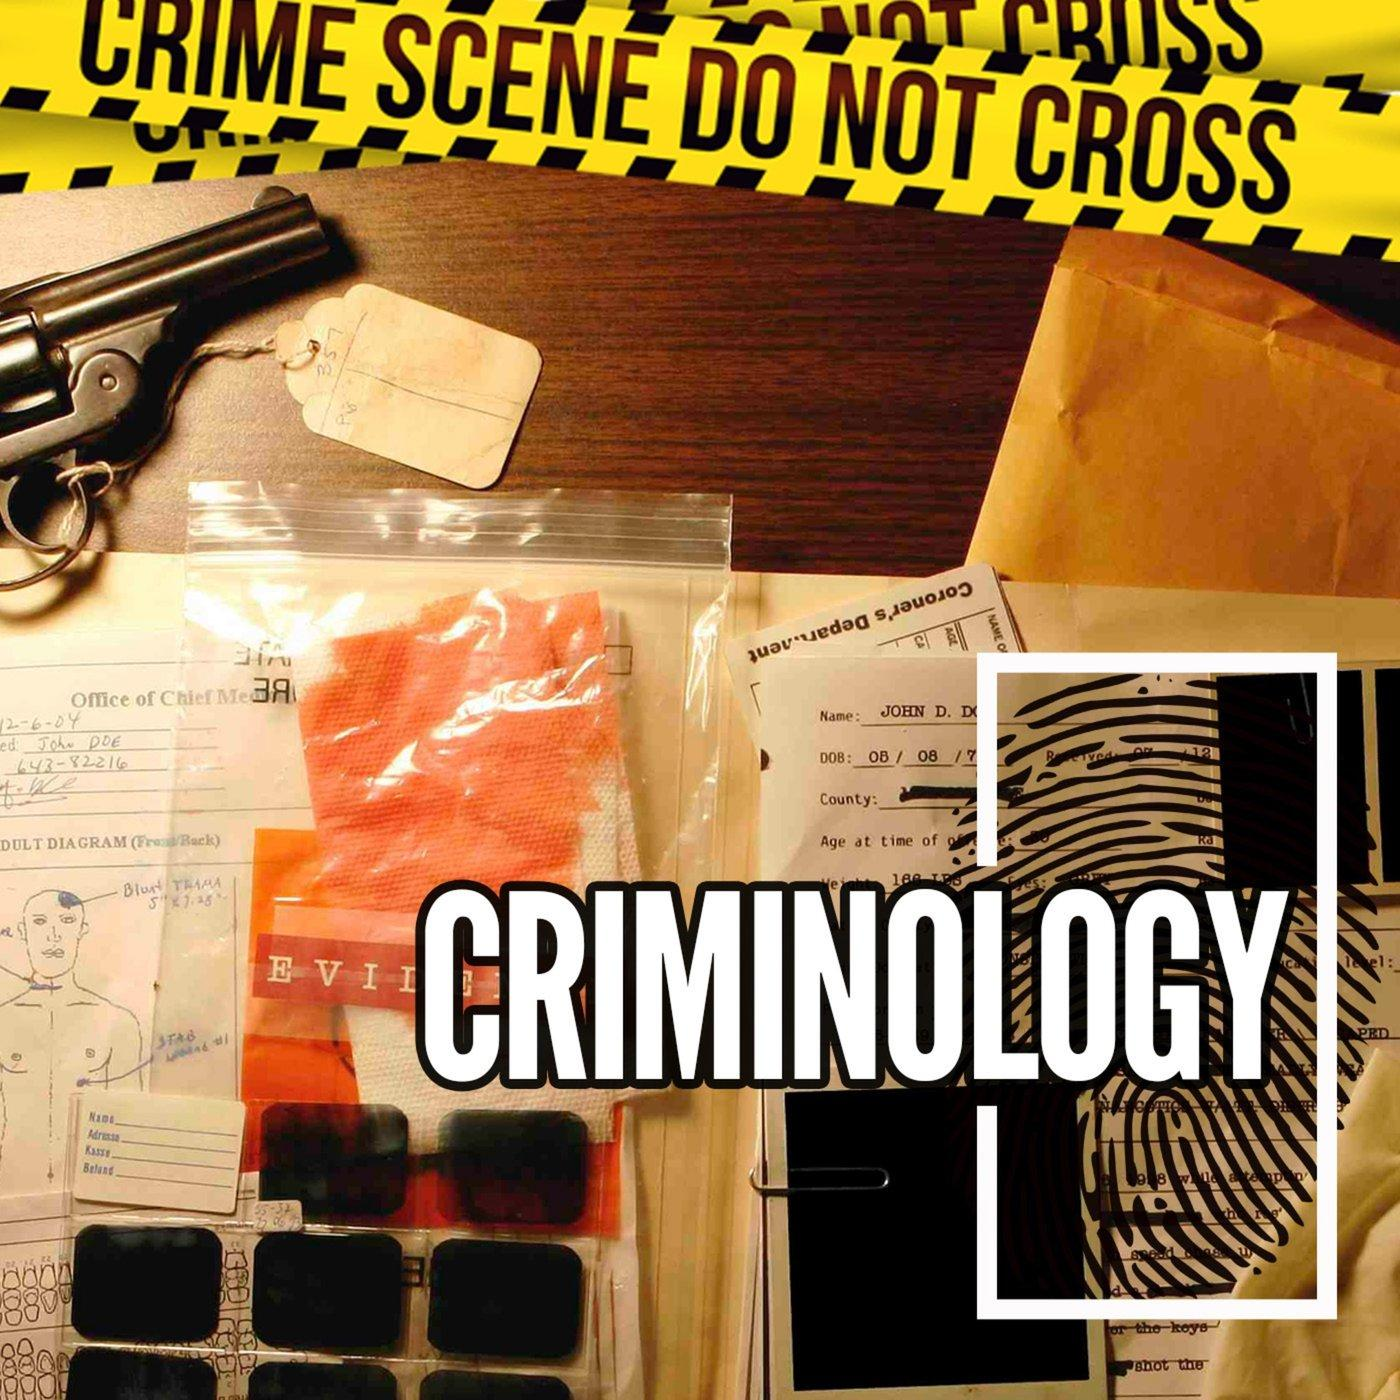 The Murders of David and Bobby Phillips - Criminology